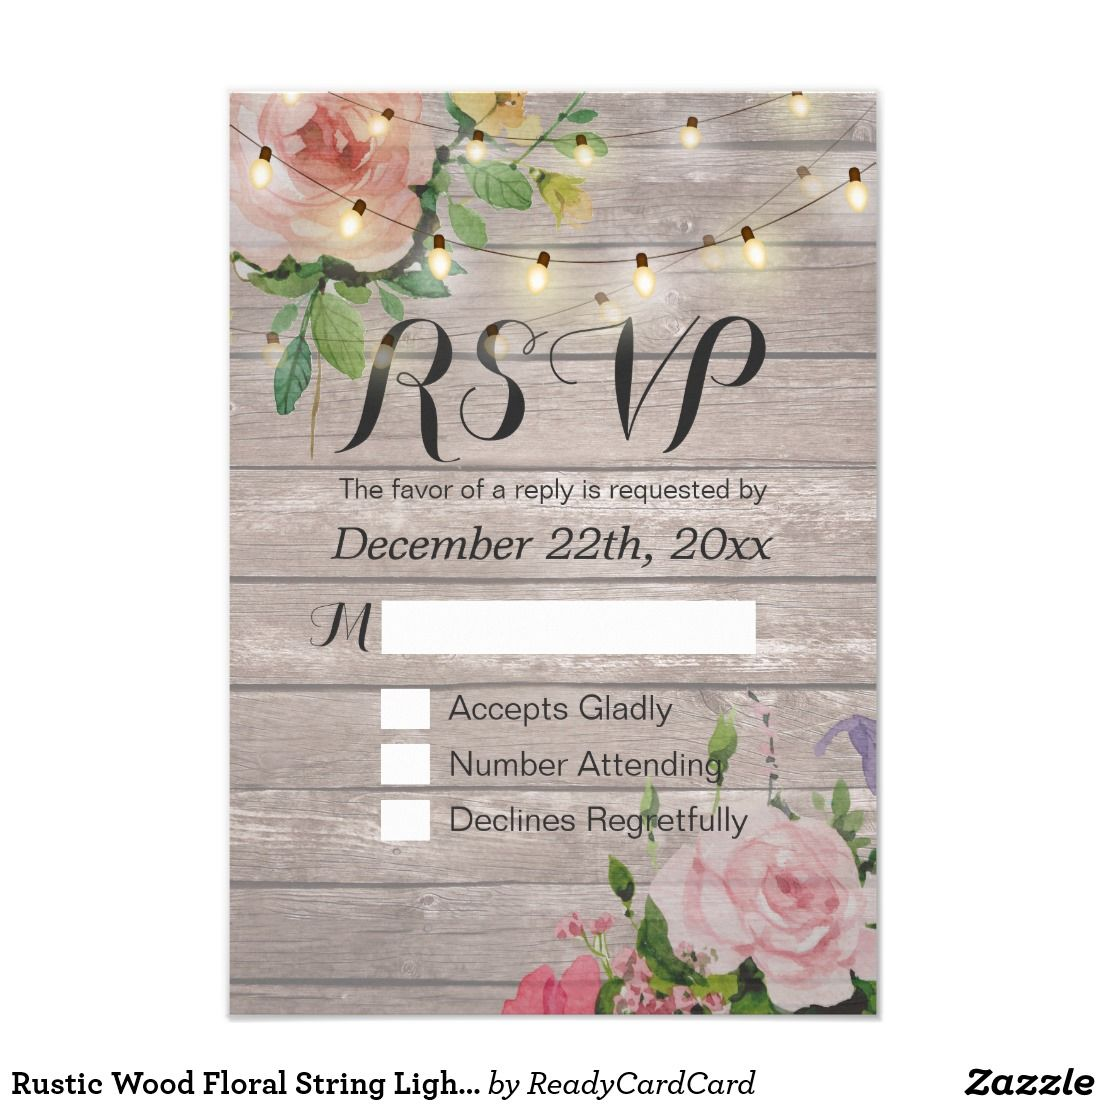 Rustic Wood Floral String Light Wedding Rsvp Reply Card Light